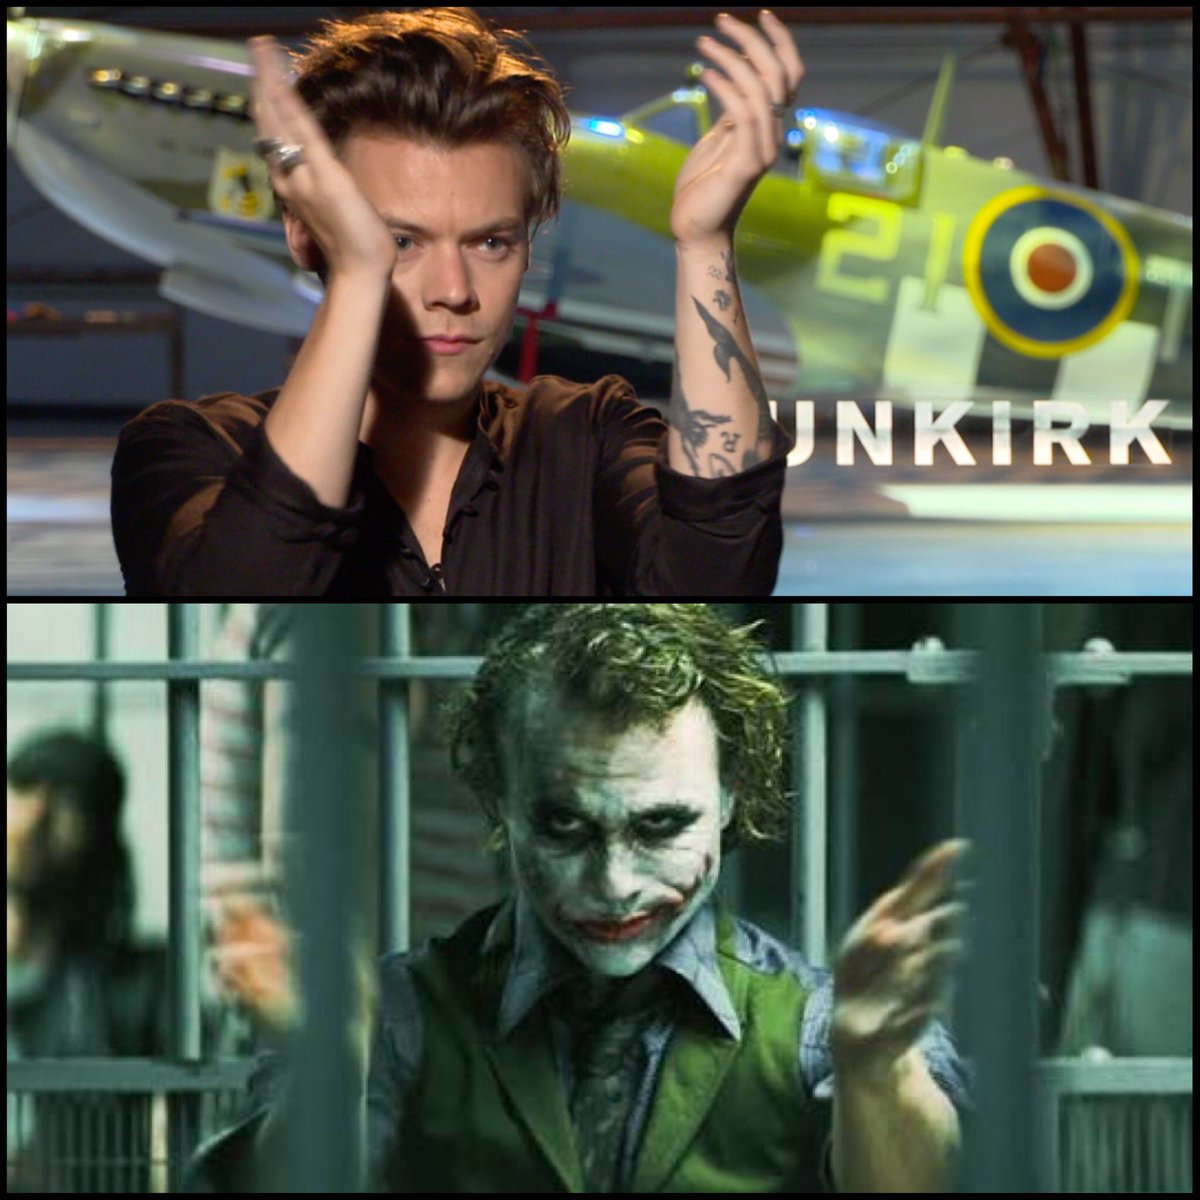 Christopher Nolan compared casting @Harry_Styles in @dunkirkmovie with casting Heath Ledger in #TheDarkKnight. 'You can see the potential.'